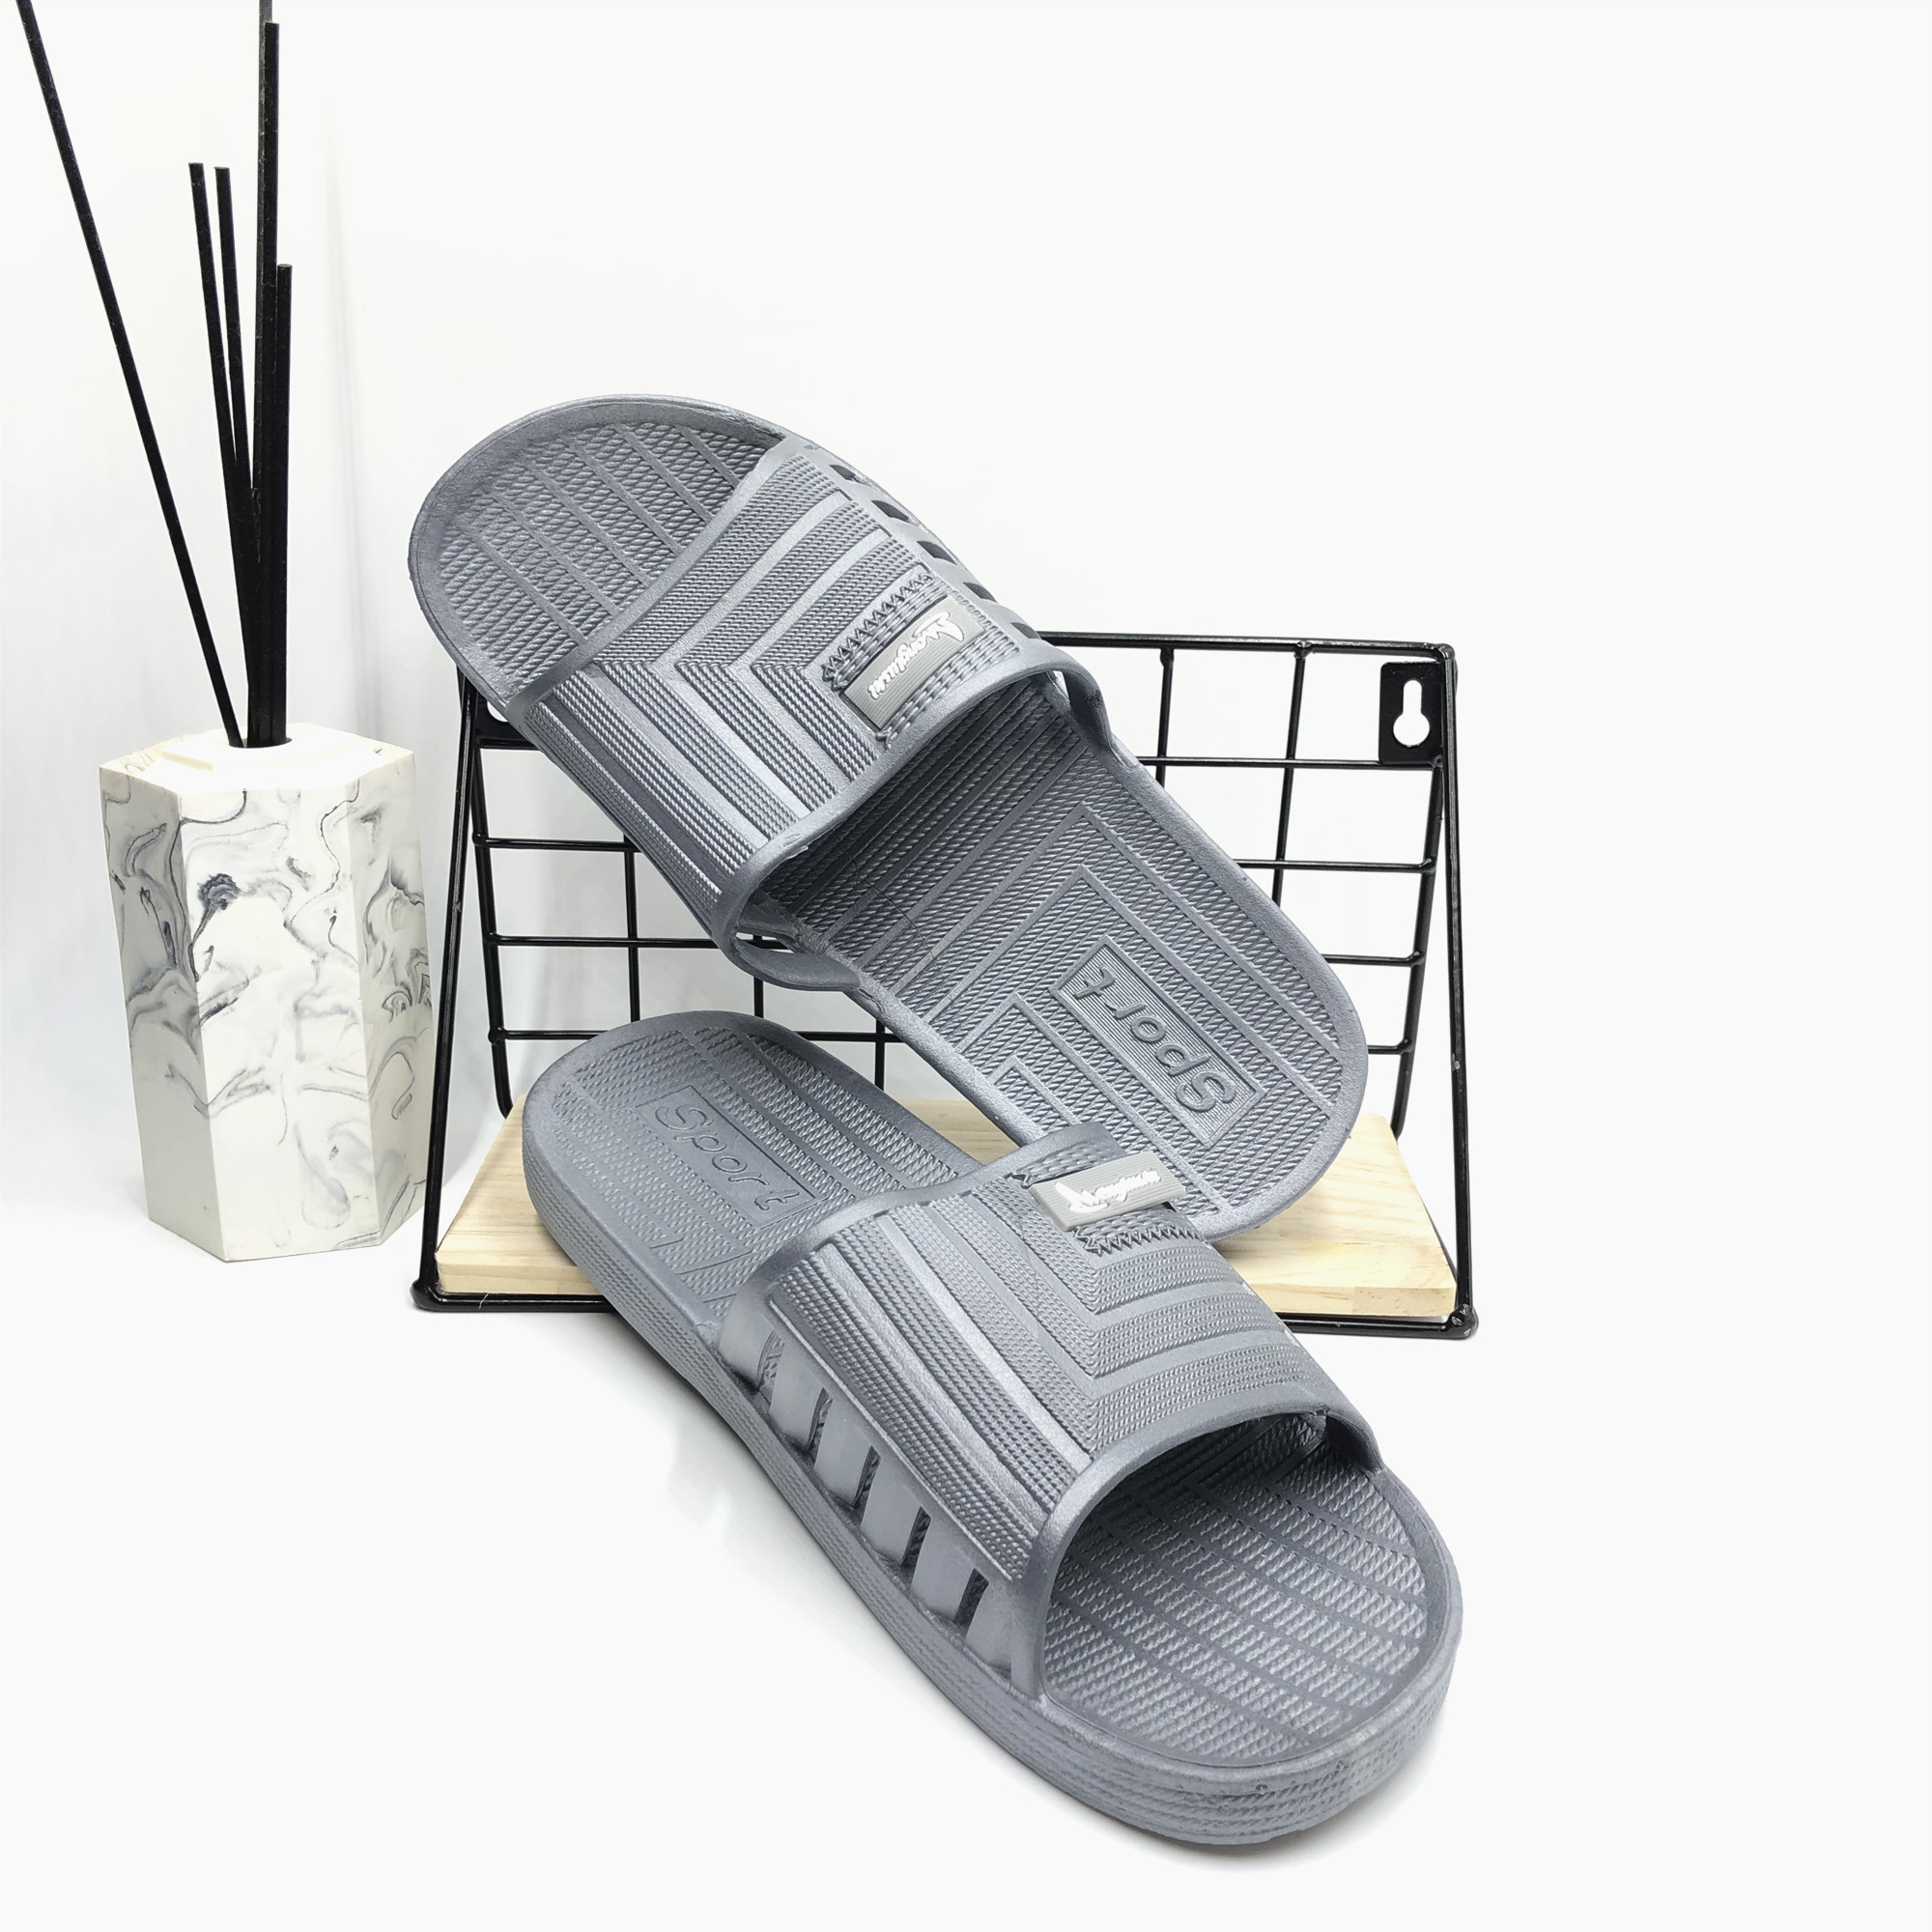 New menglushi rubber bath and bathroom anti-skid sandals men and women couples home slippers hospital Hotel soft bottom slippers